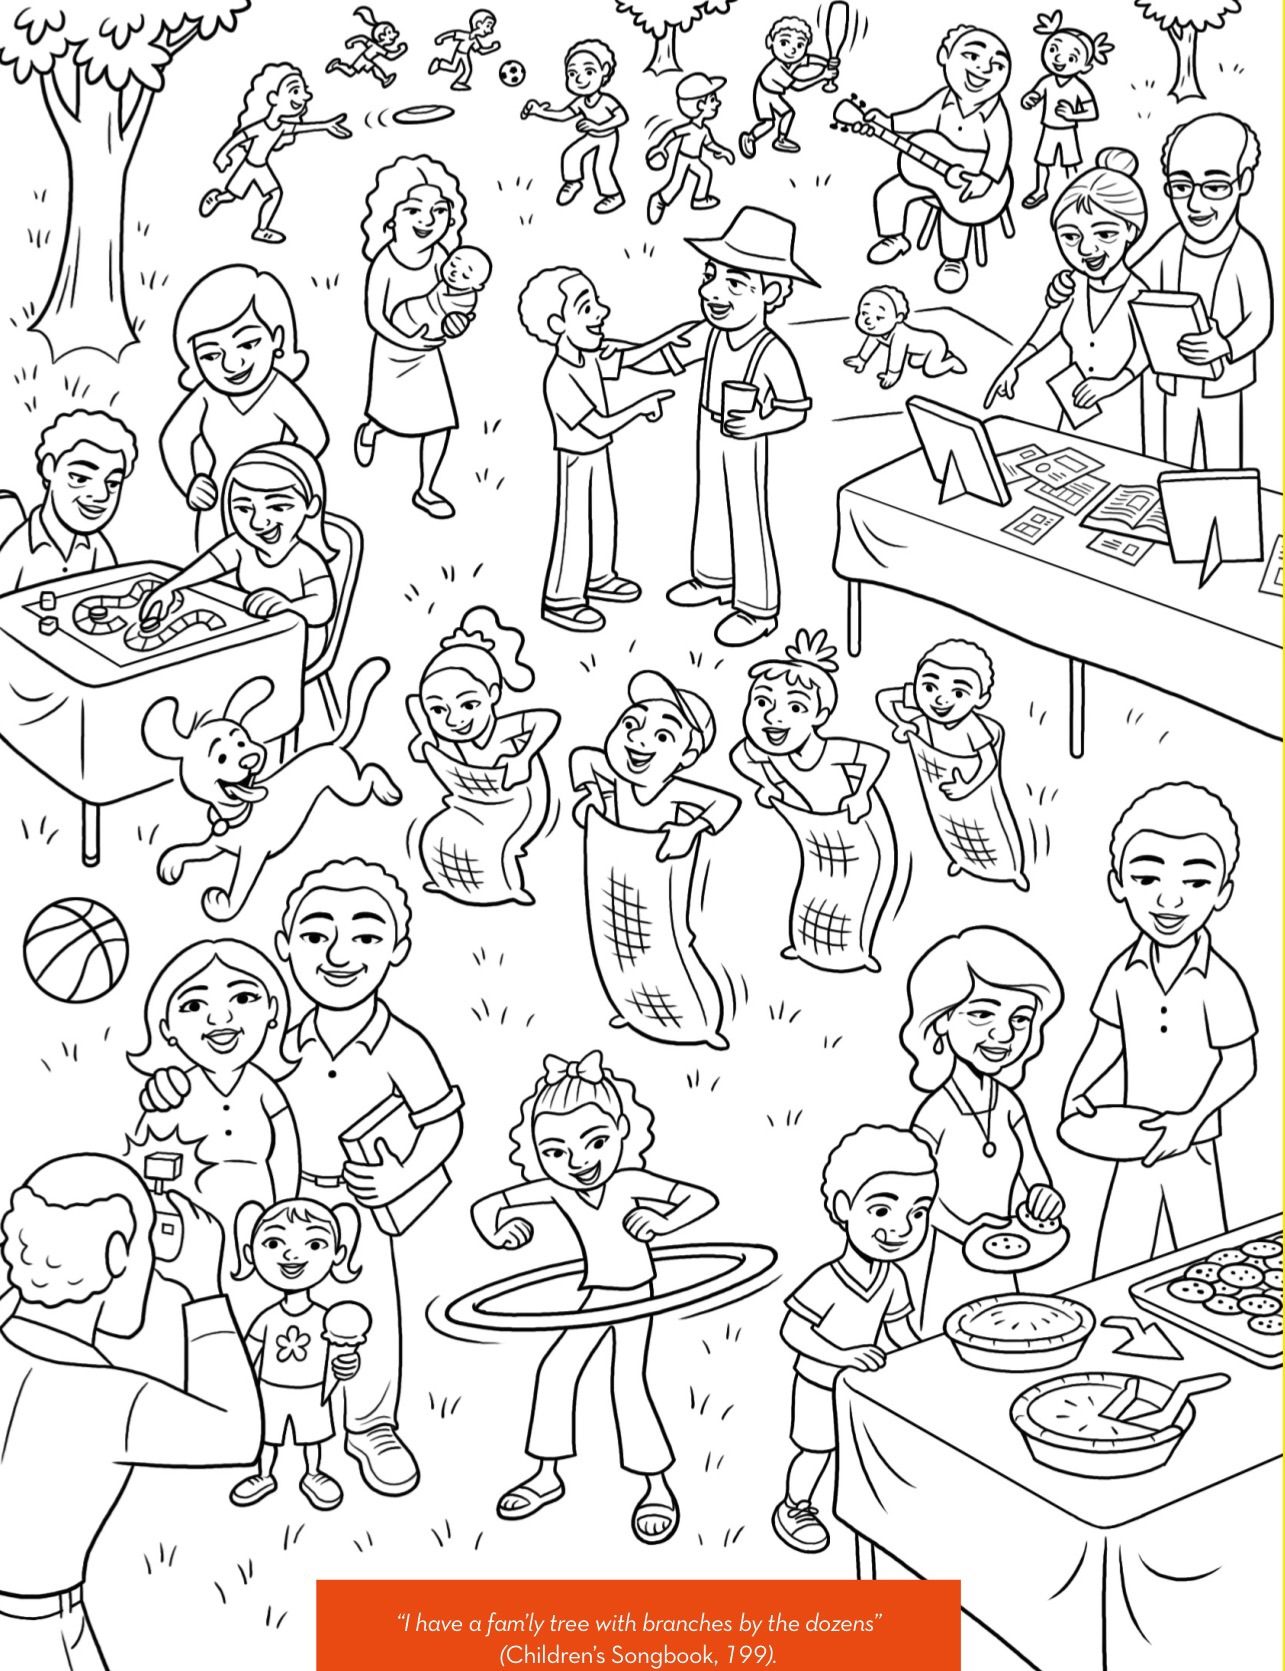 Easter Coloring Pages and Printouts for Kids: Free Family coloring pictures for kids